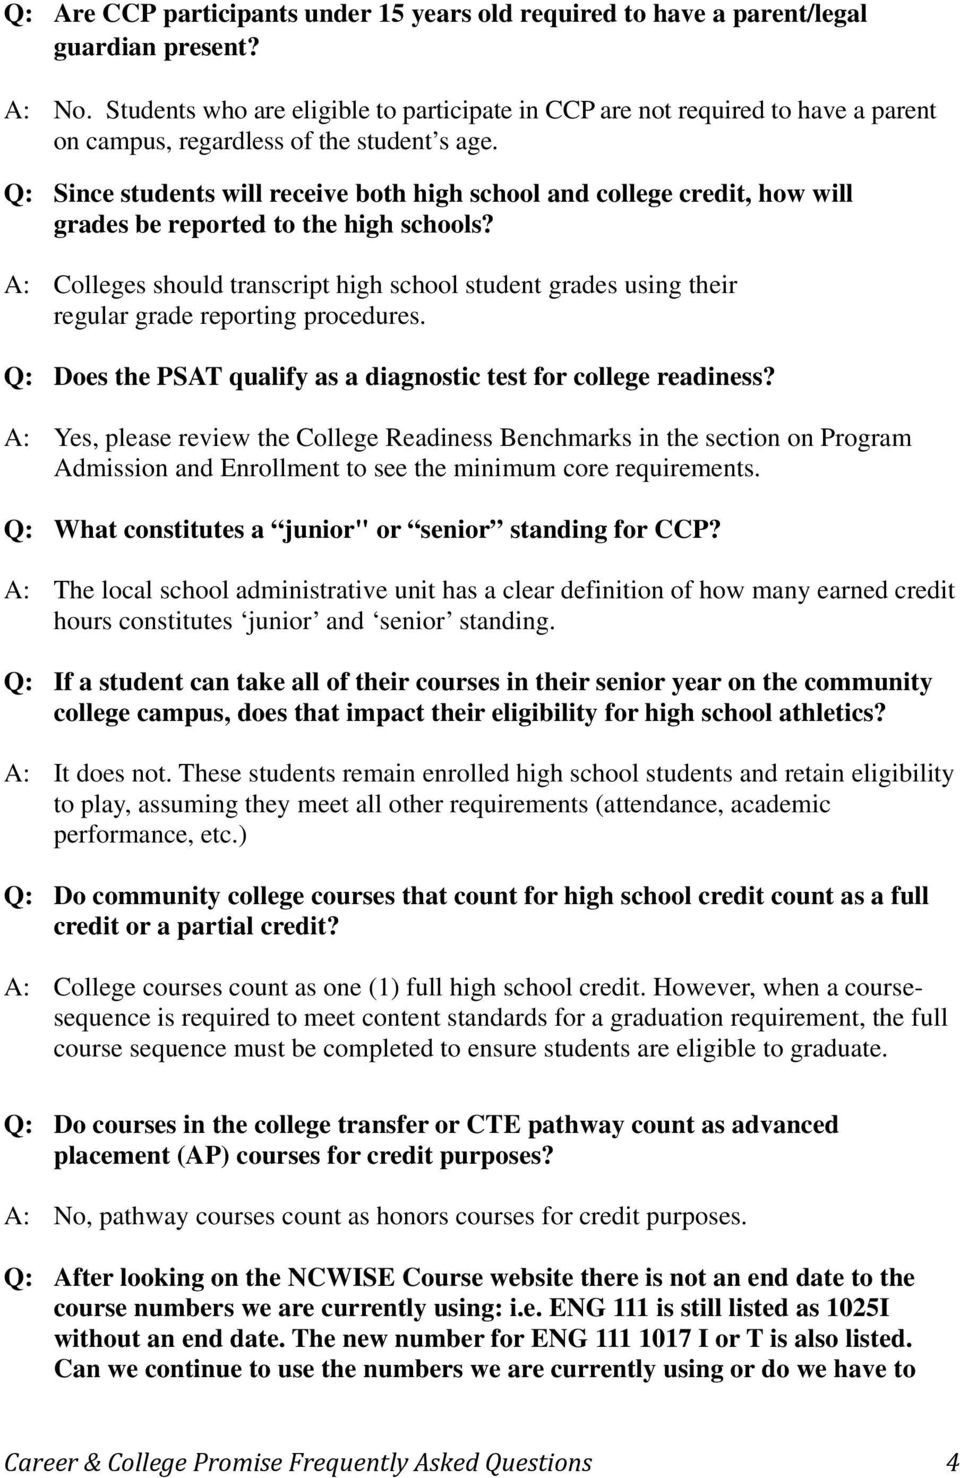 Q: Since students will receive both high school and college credit, how will grades be reported to the high schools?